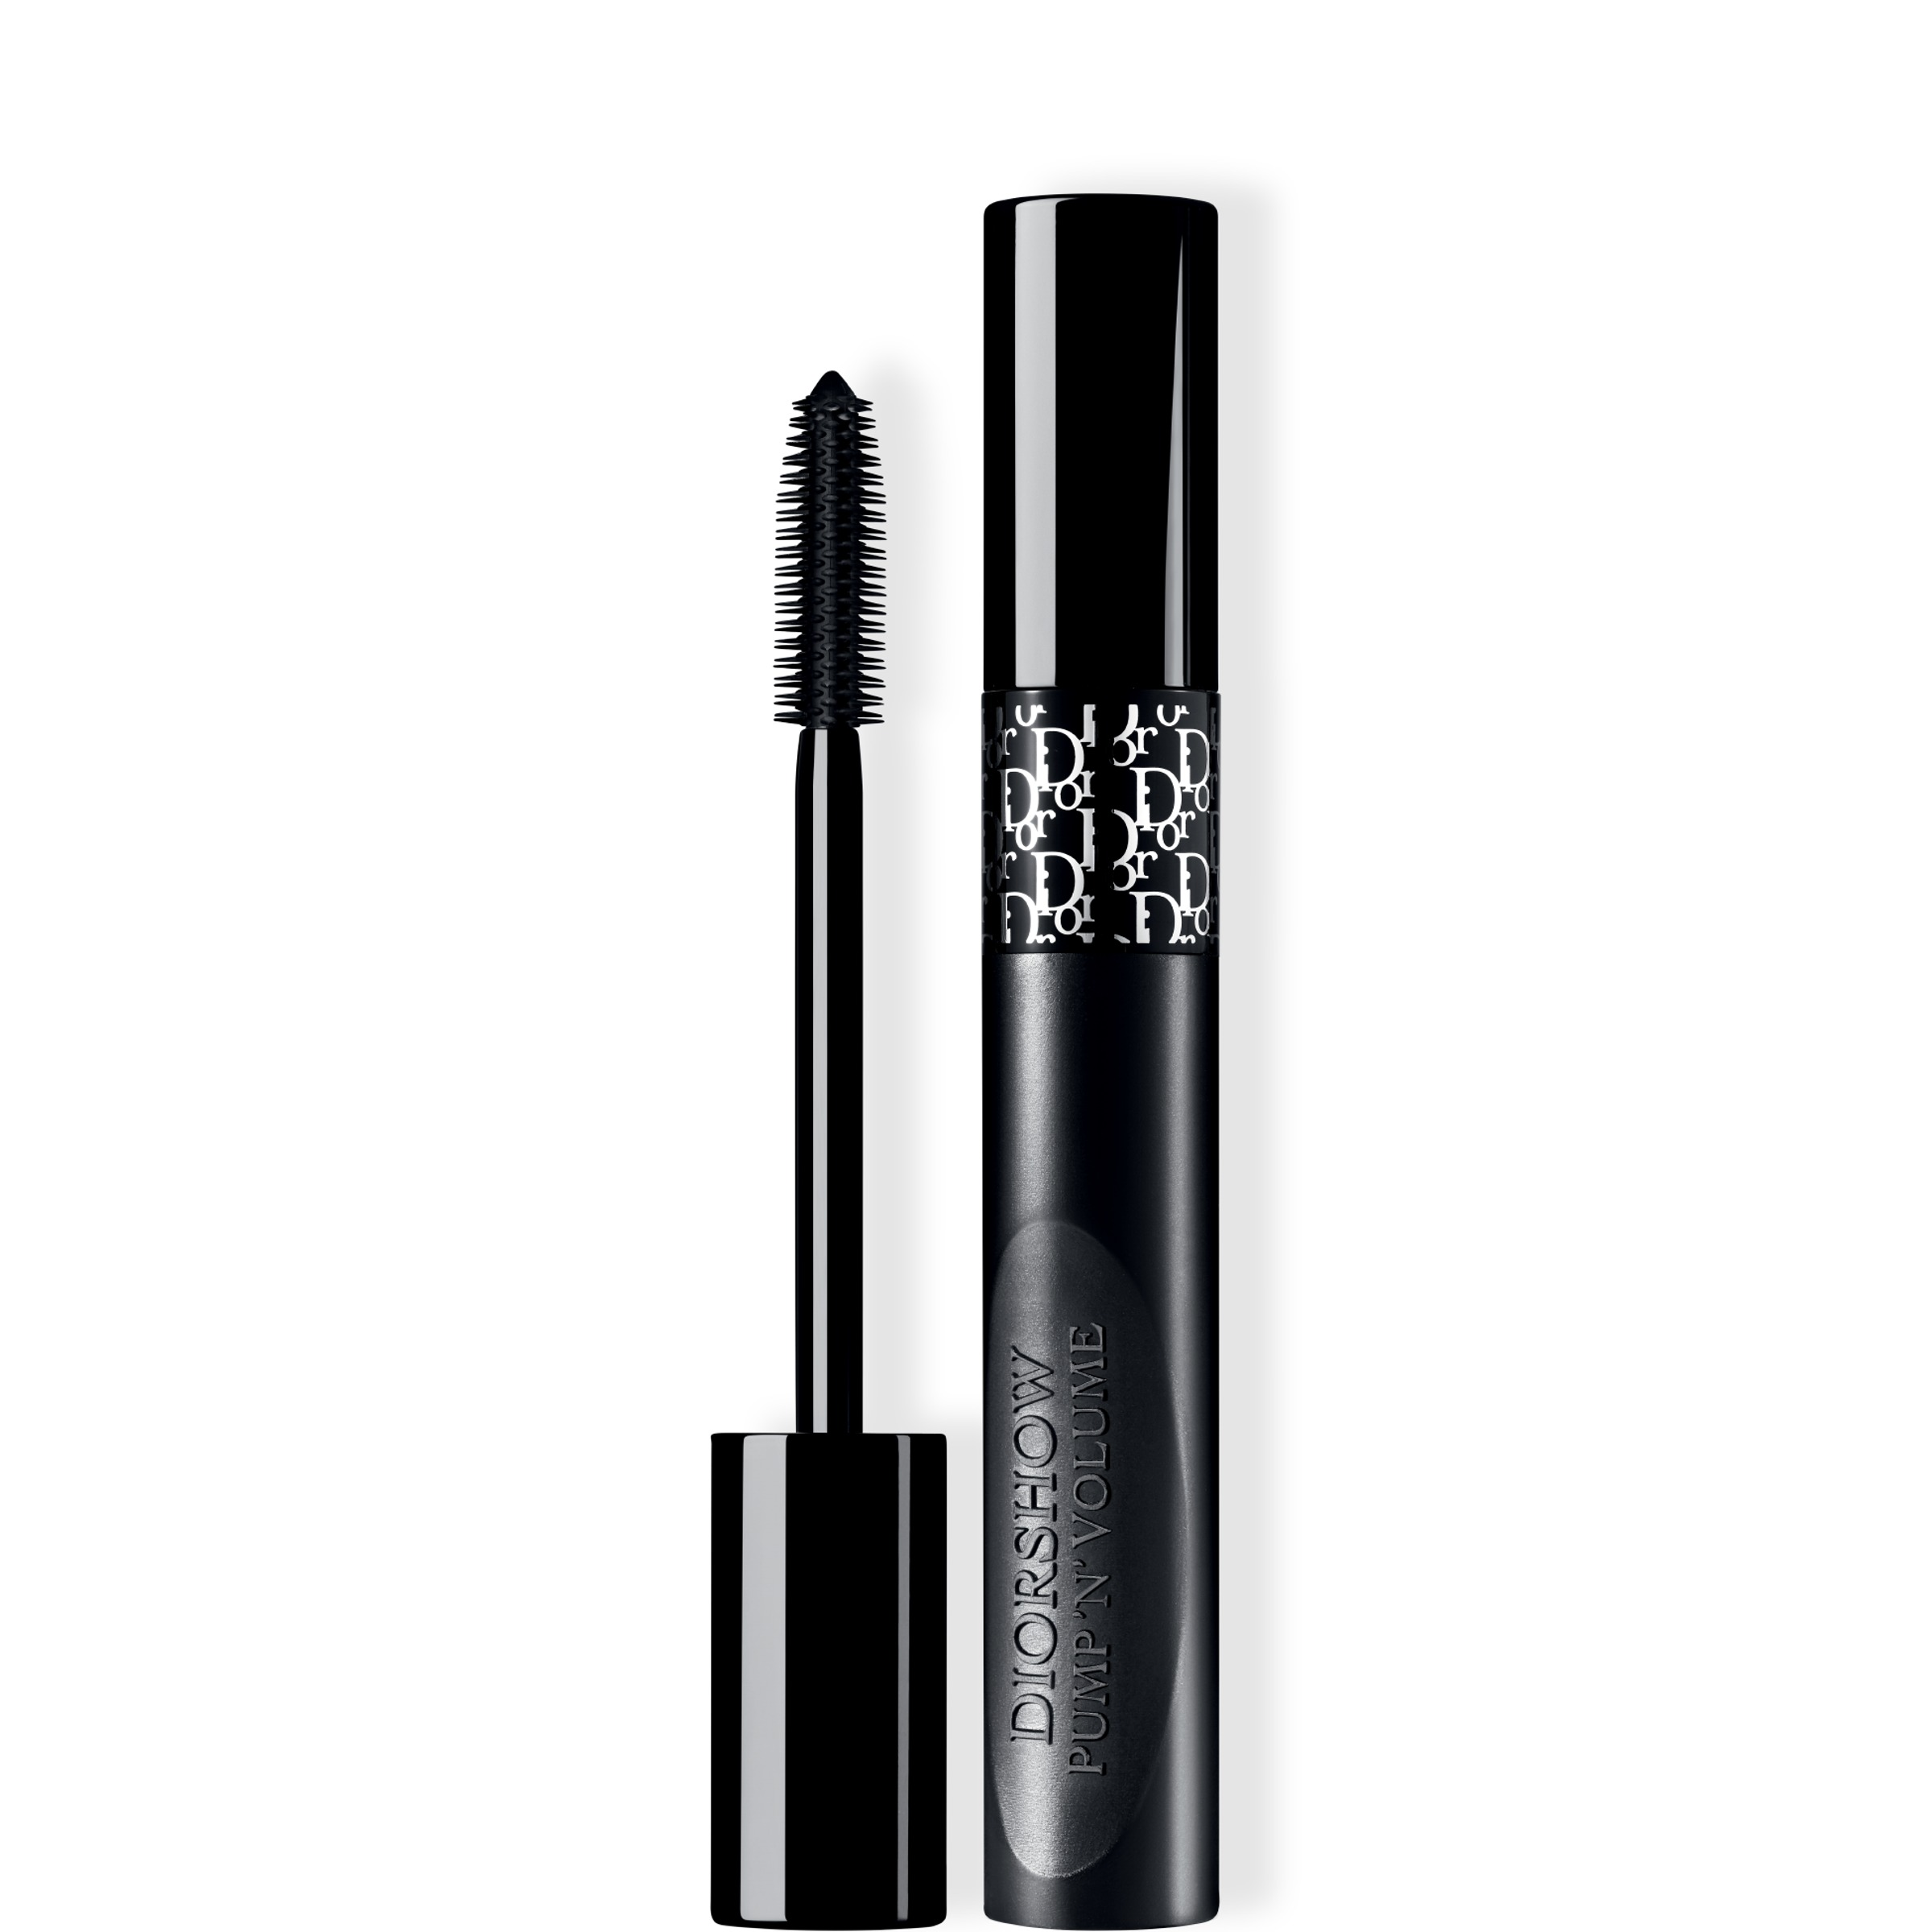 Diorshow Pump 'N' Volume HD Mascara 090 Black